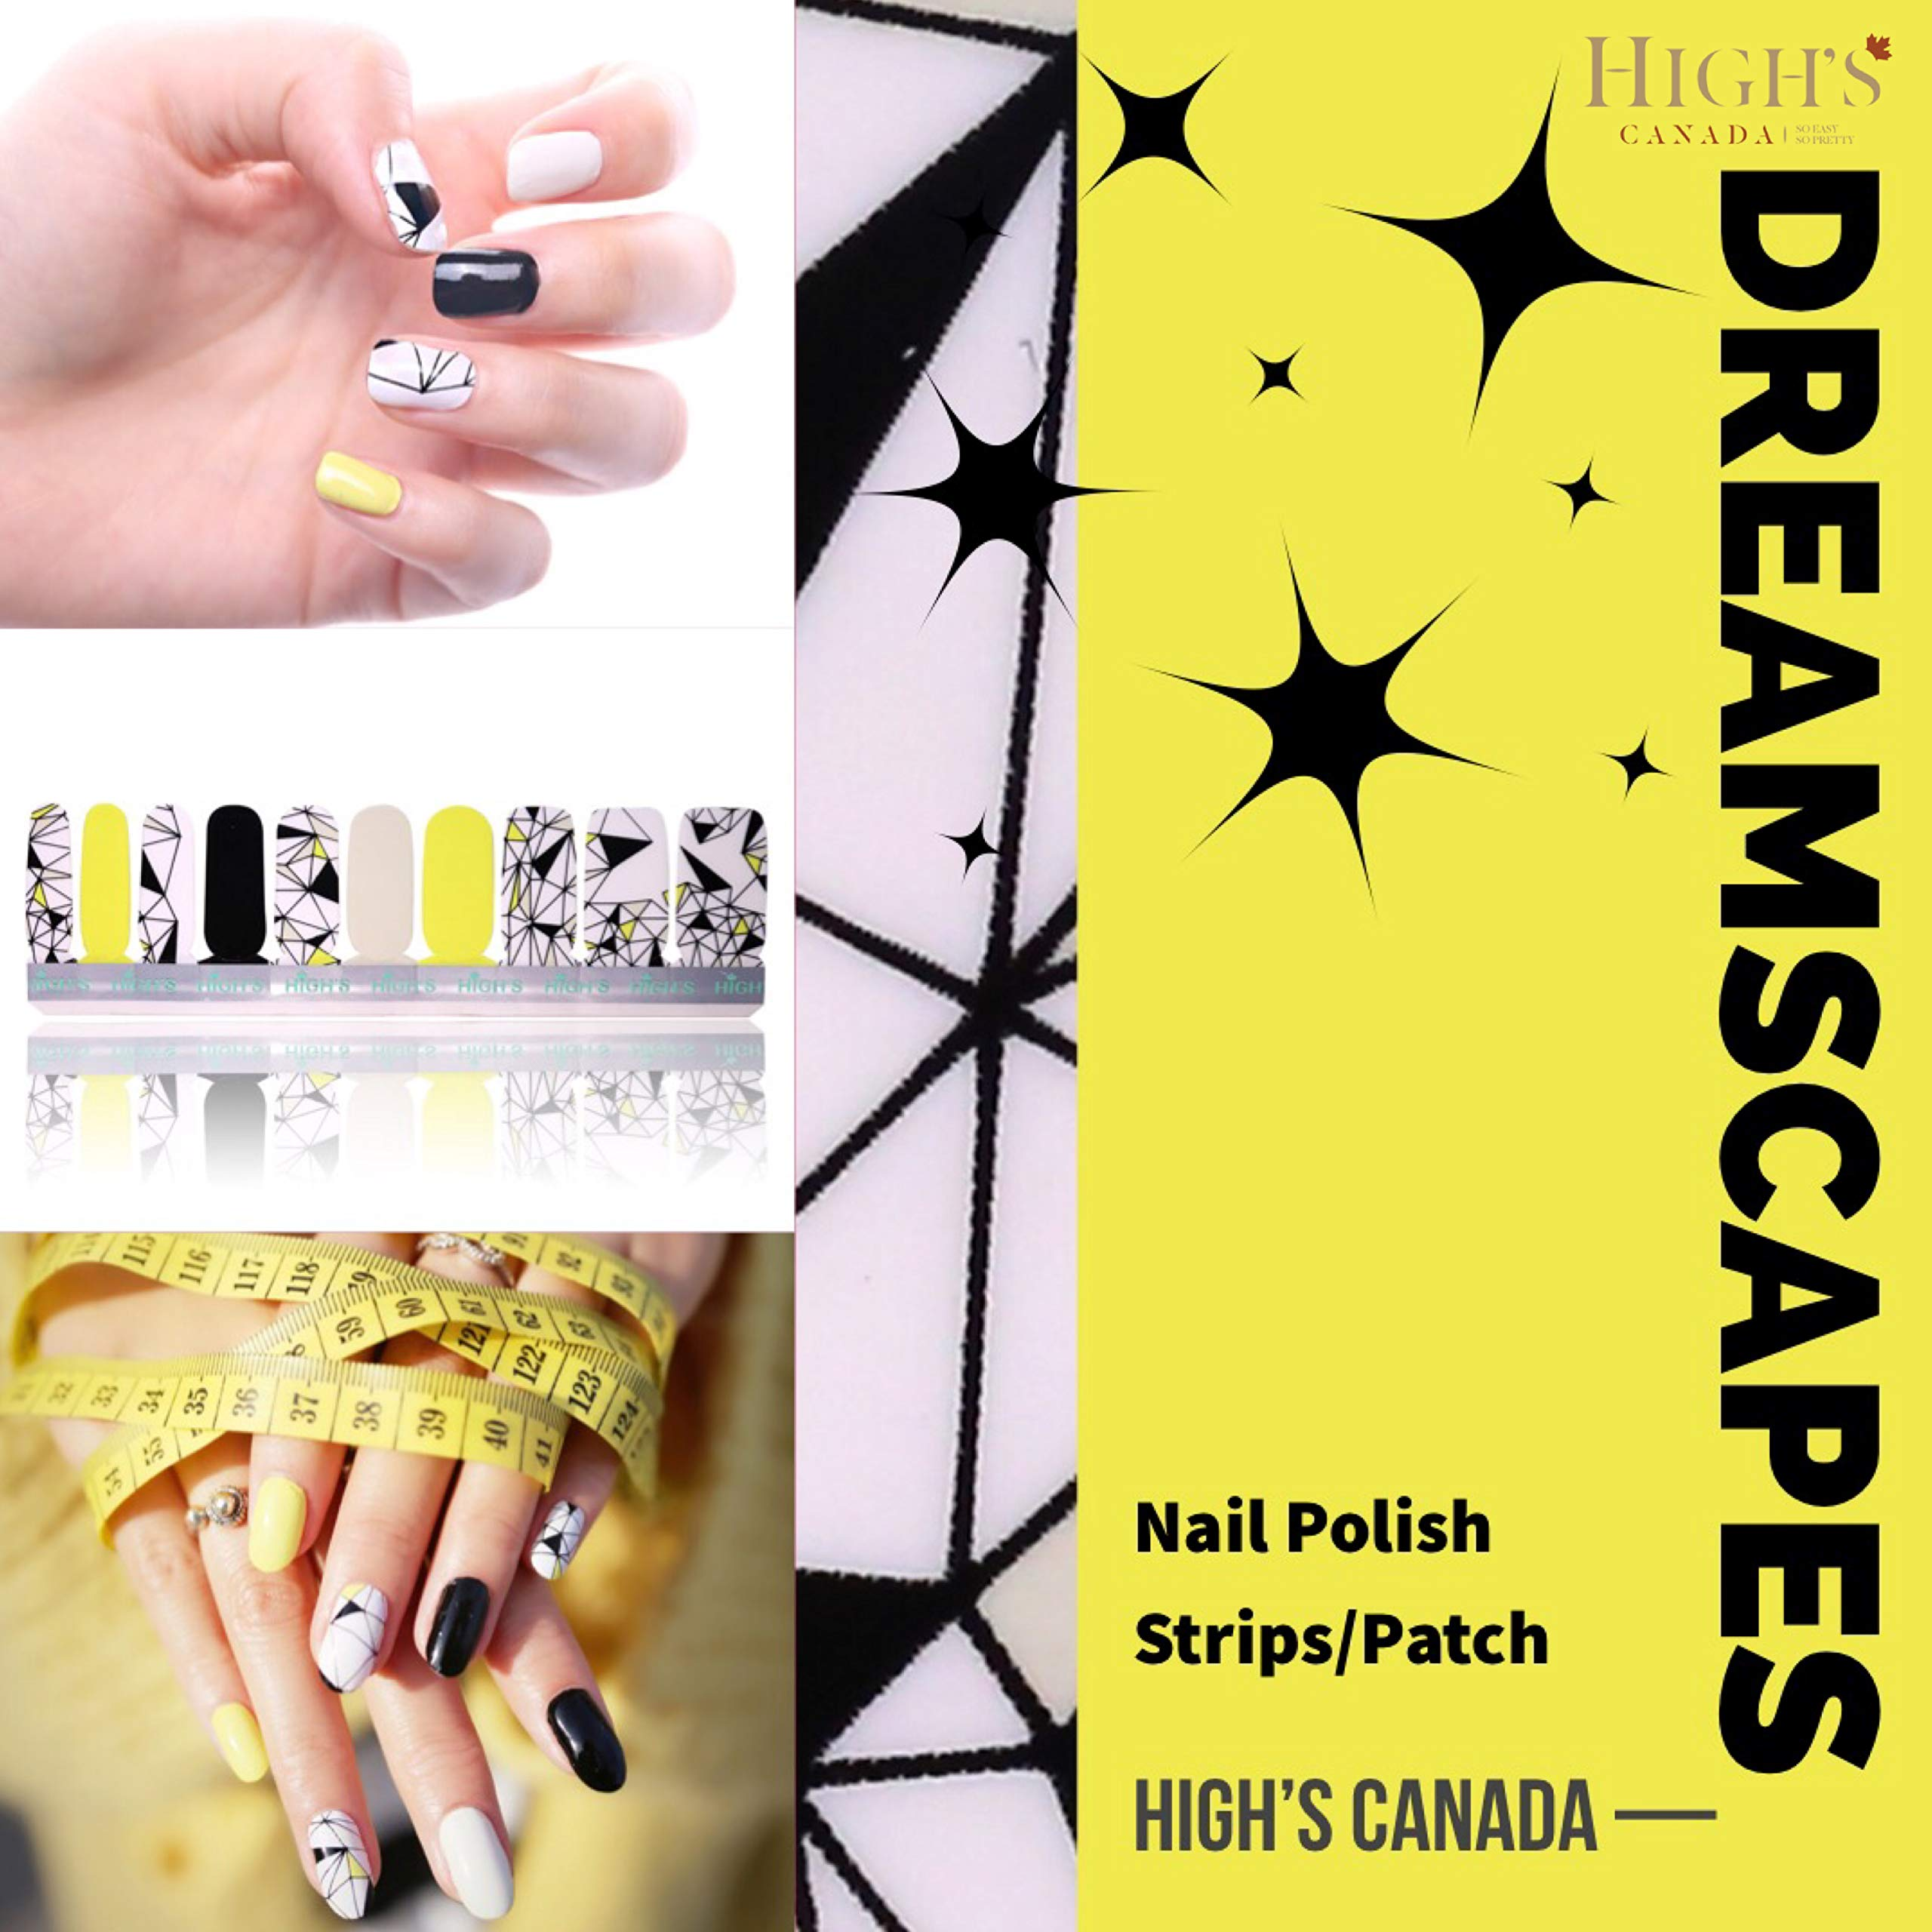 HIGH'S EXTRE Adhesion 20pcs Nail Art Transfer Decals Sticker Design Series The Cocktail Collection Manicure DIY Nail Polish Strips Wraps for Wedding,Party,Shopping,Travelling (Dreamscapes)